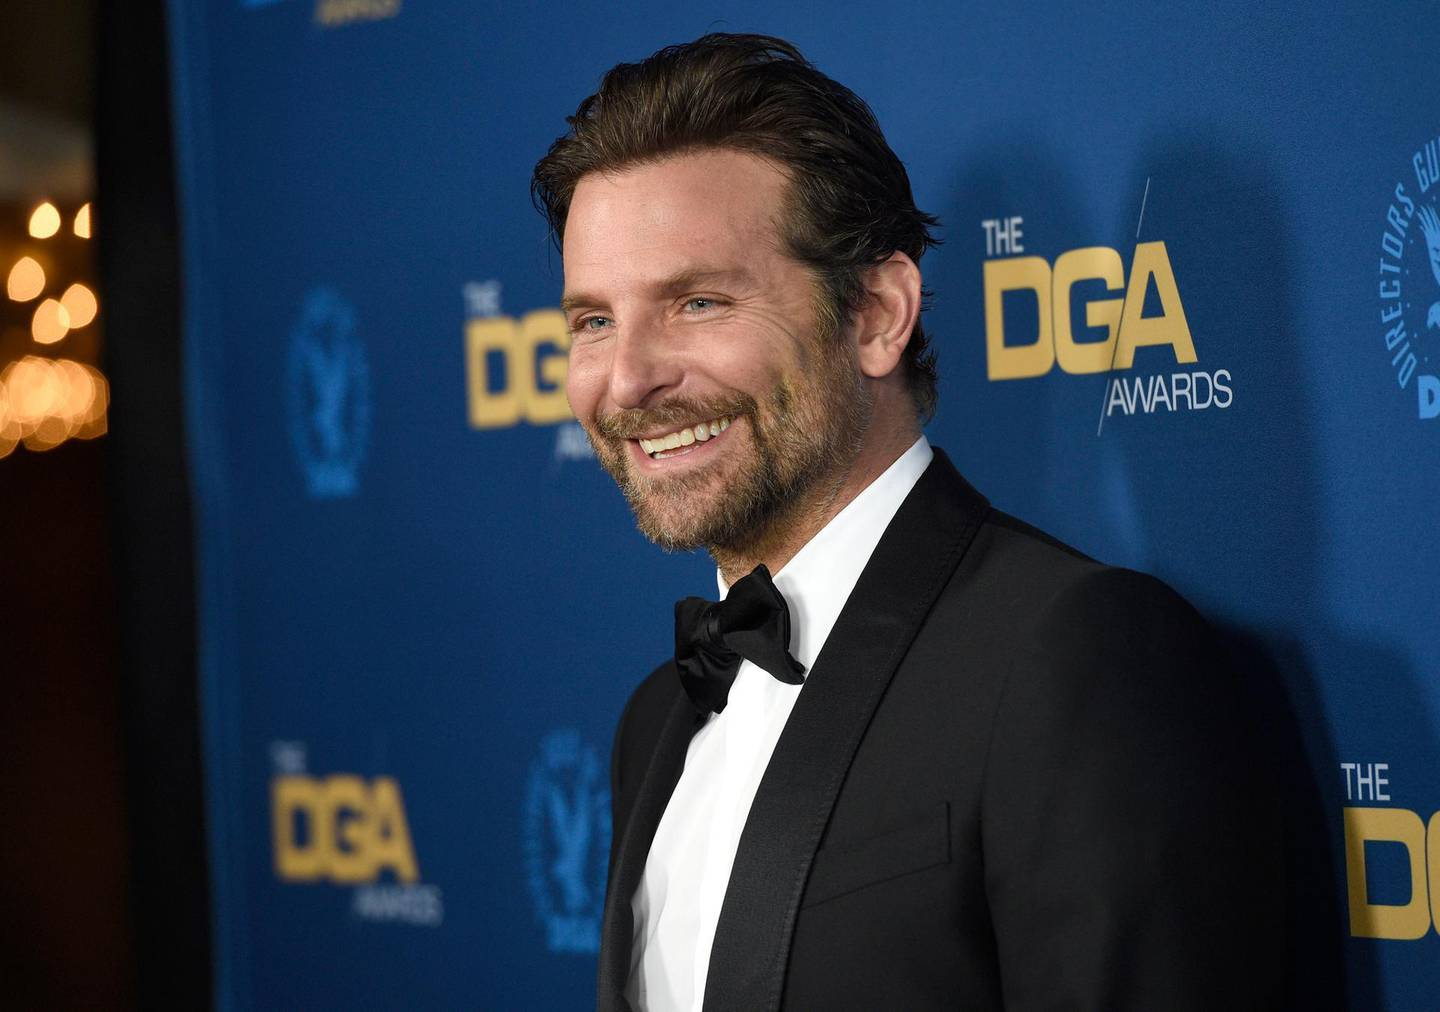 Bradley Cooper arrives at the 71st annual DGA Awards at the Ray Dolby Ballroom on Saturday, Feb. 2, 2019, in Los Angeles. (Photo by Chris Pizzello/Invision/AP)